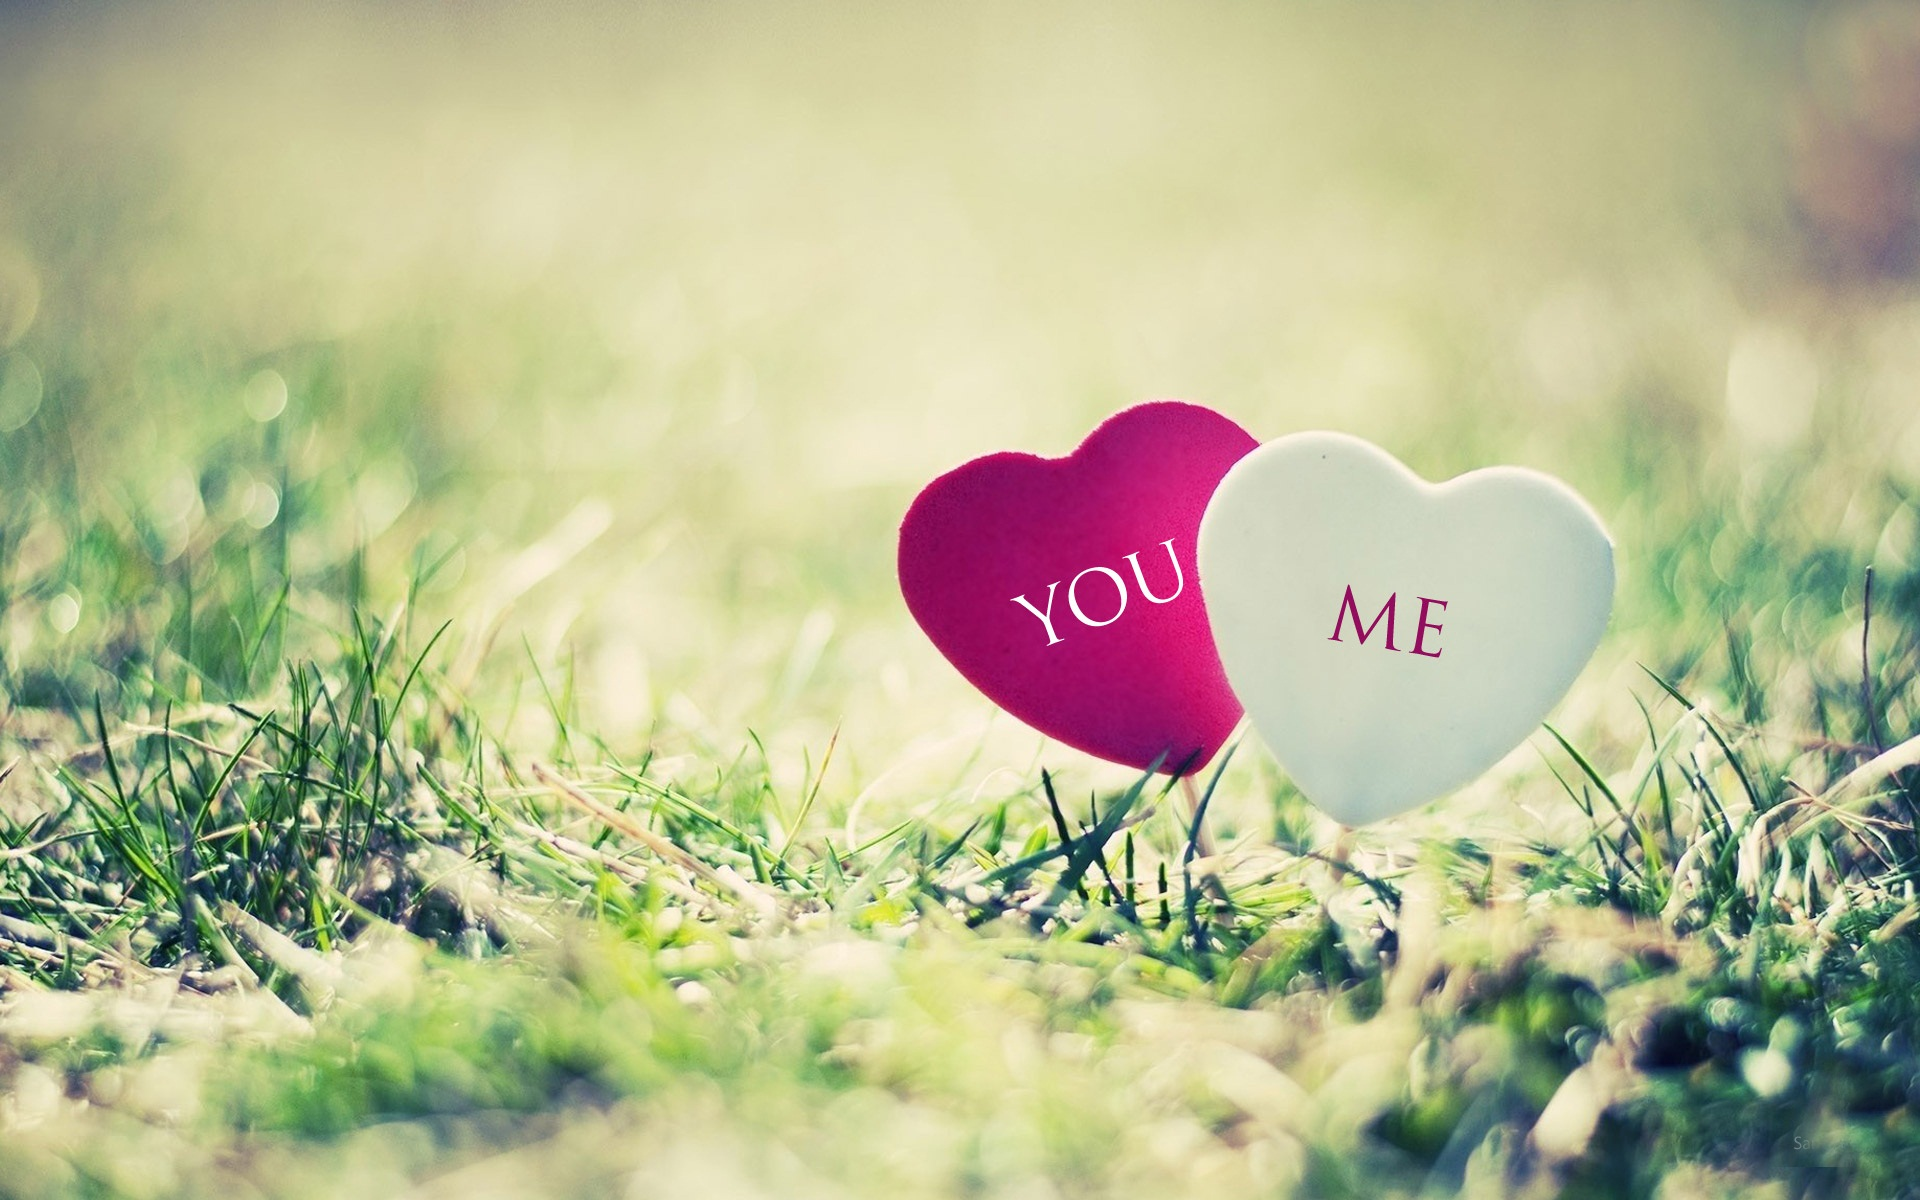 Love you so much love me hd wallpaper for desktop HD Wallpapers